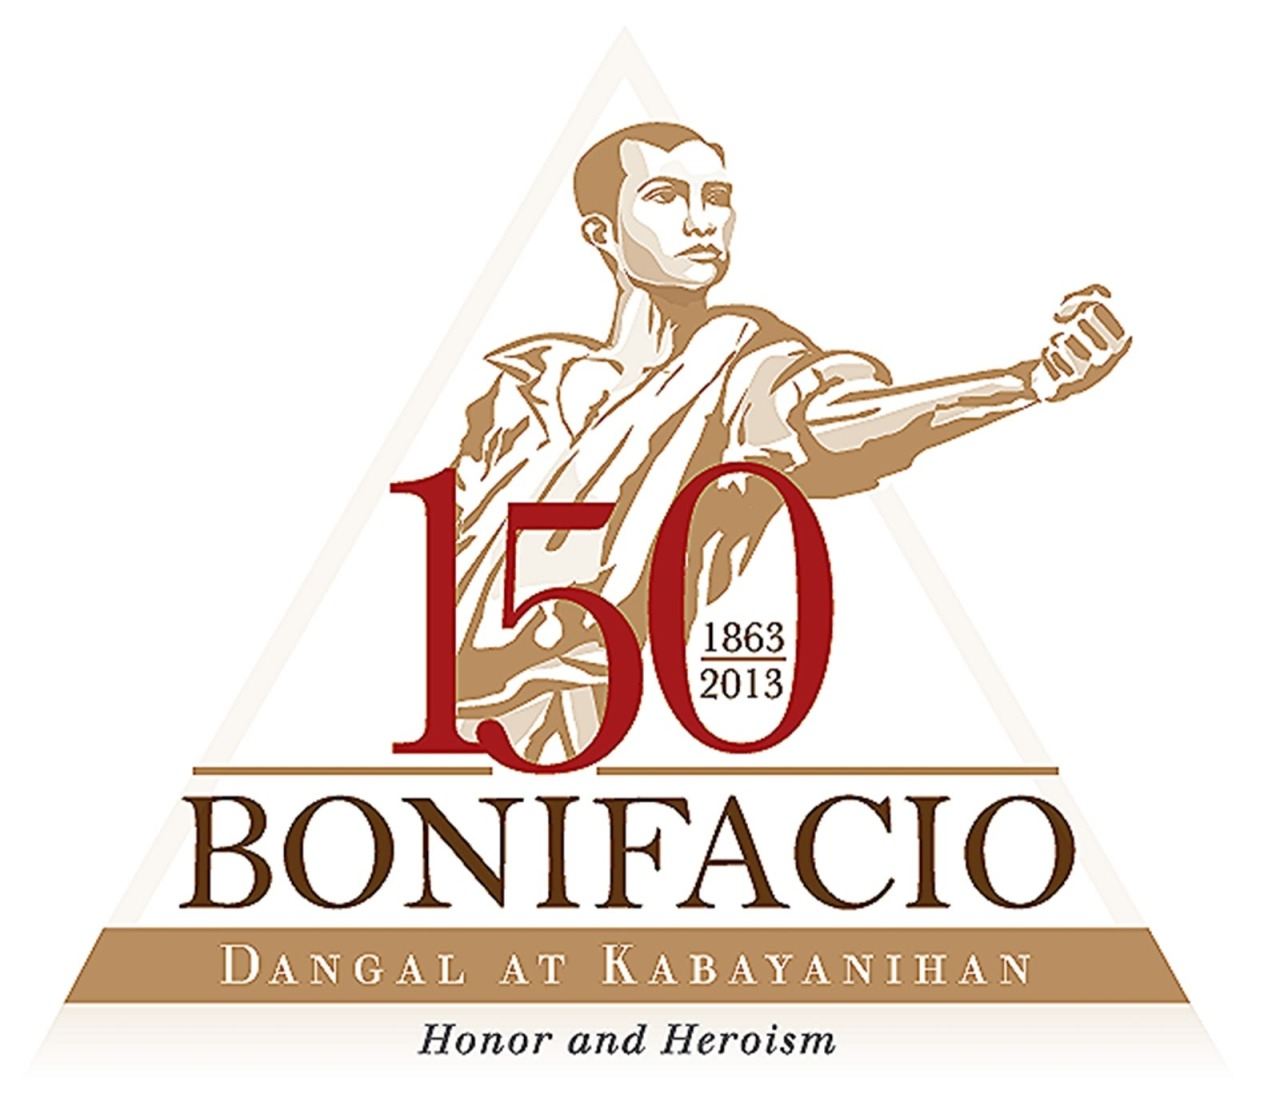 How many of you guys know that this year is going to be Andres Bonifacio's 150th? A grand celebration awaits. He was the first one, a Filipino, who sparked a revolution in Asia. Even when he was killed by his own countrymen, the legacy he left has outlasted him. Full of ironies and lessons, his life continues to be an inspiration to every Filipino. The official government website for the nationwide celebration is HERE.  *The logo above is the official logo of the 150th Bonifacio Sesquicentennial, from the National Historical Commission of the Philippines. I love the fact that the logo deviated from the screaming Bonifacio stereotype. His life was a firm and steadfast example, of honor and sacrifice even amidst defeat and betrayal.